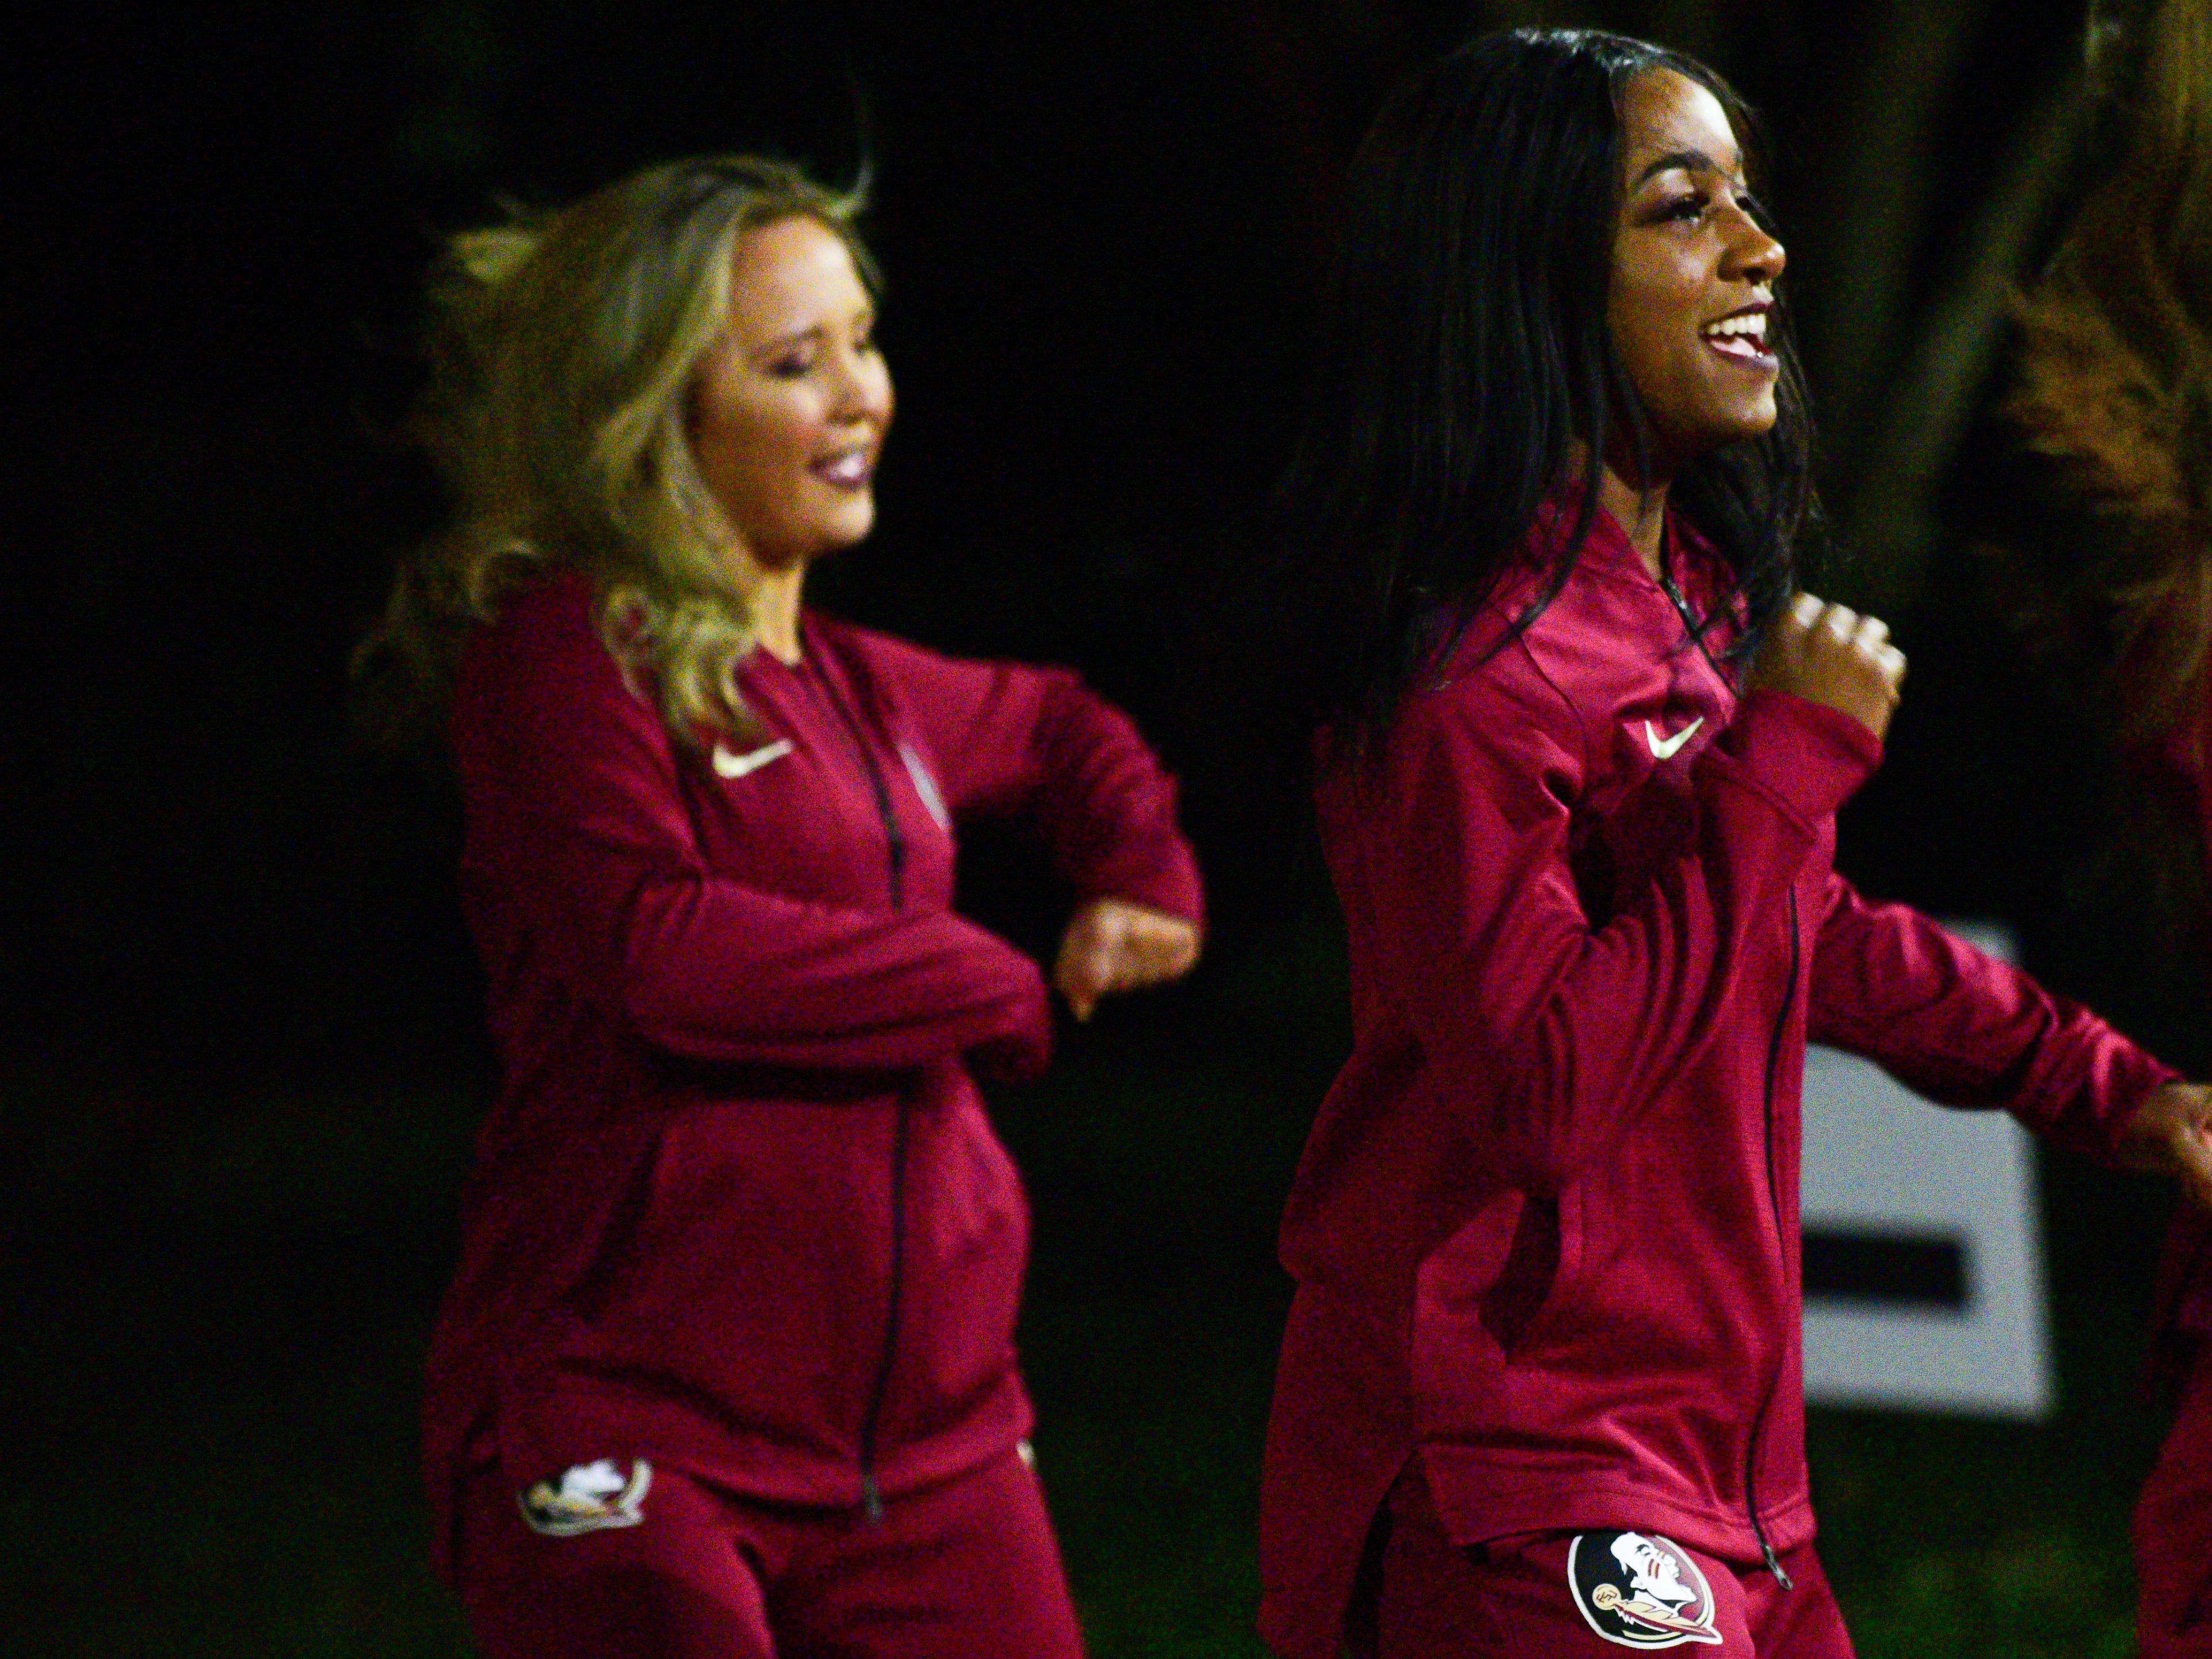 The Florida State Golden Girls perform at a fundraiser for the Hot Yoga shooting victims at the President's House on Monday.